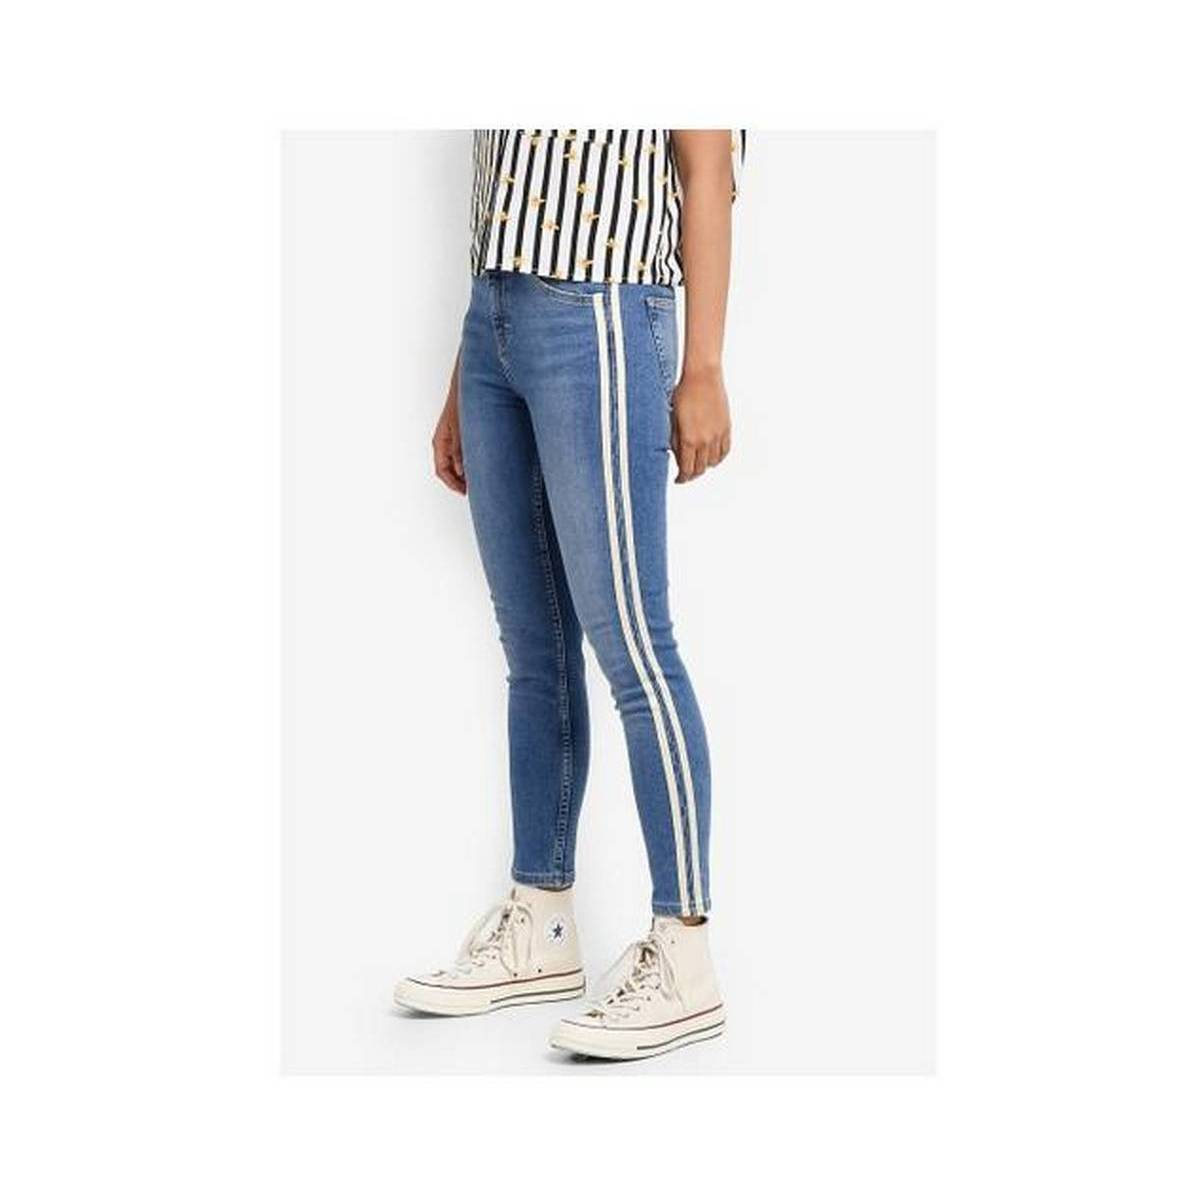 ice Blue Stripe Style Jeans For Girls and women